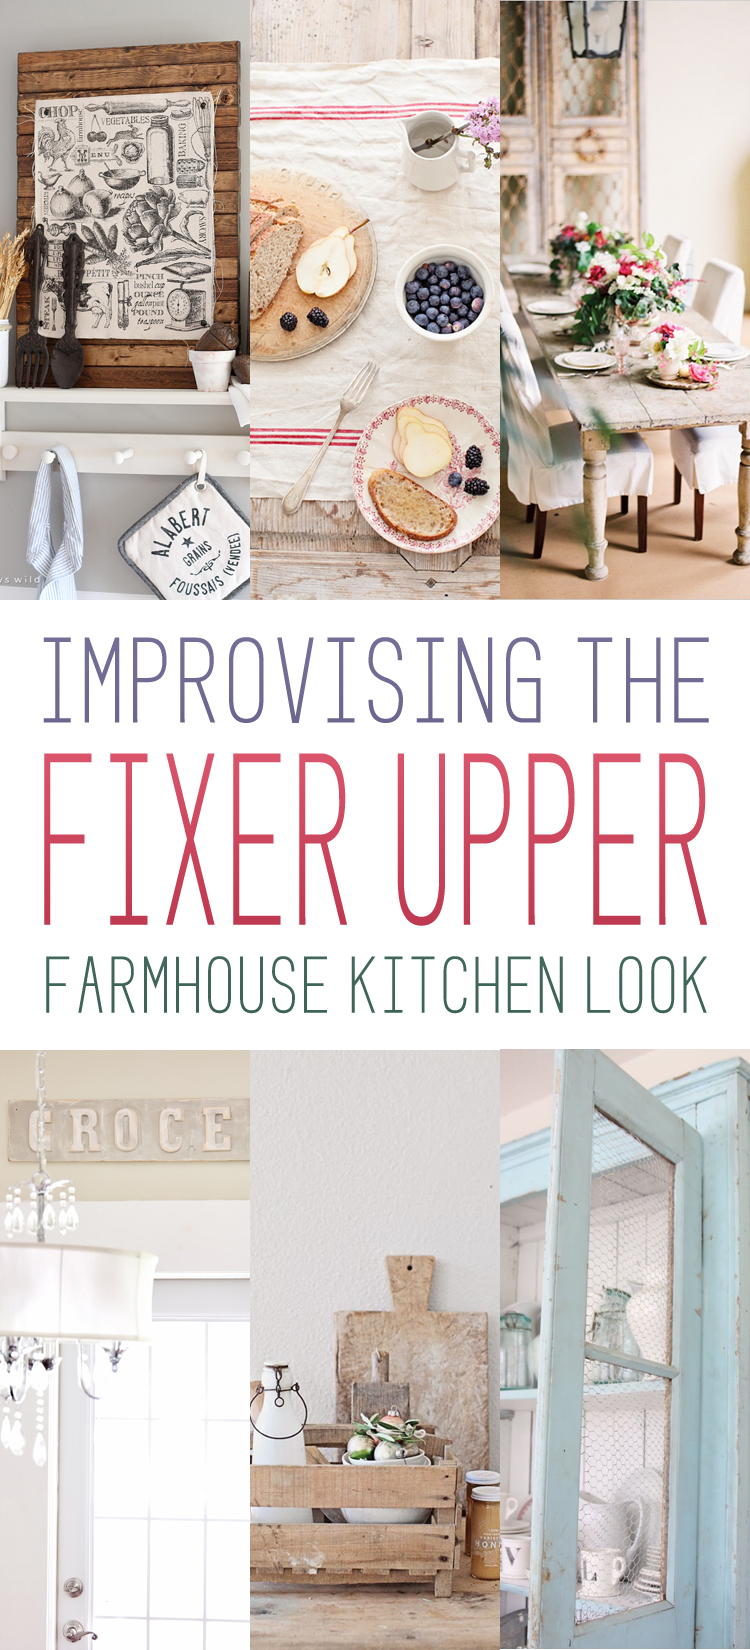 Farm Kitchen The Fixer Upper Farmhouse Kitchen Look The Cottage Market